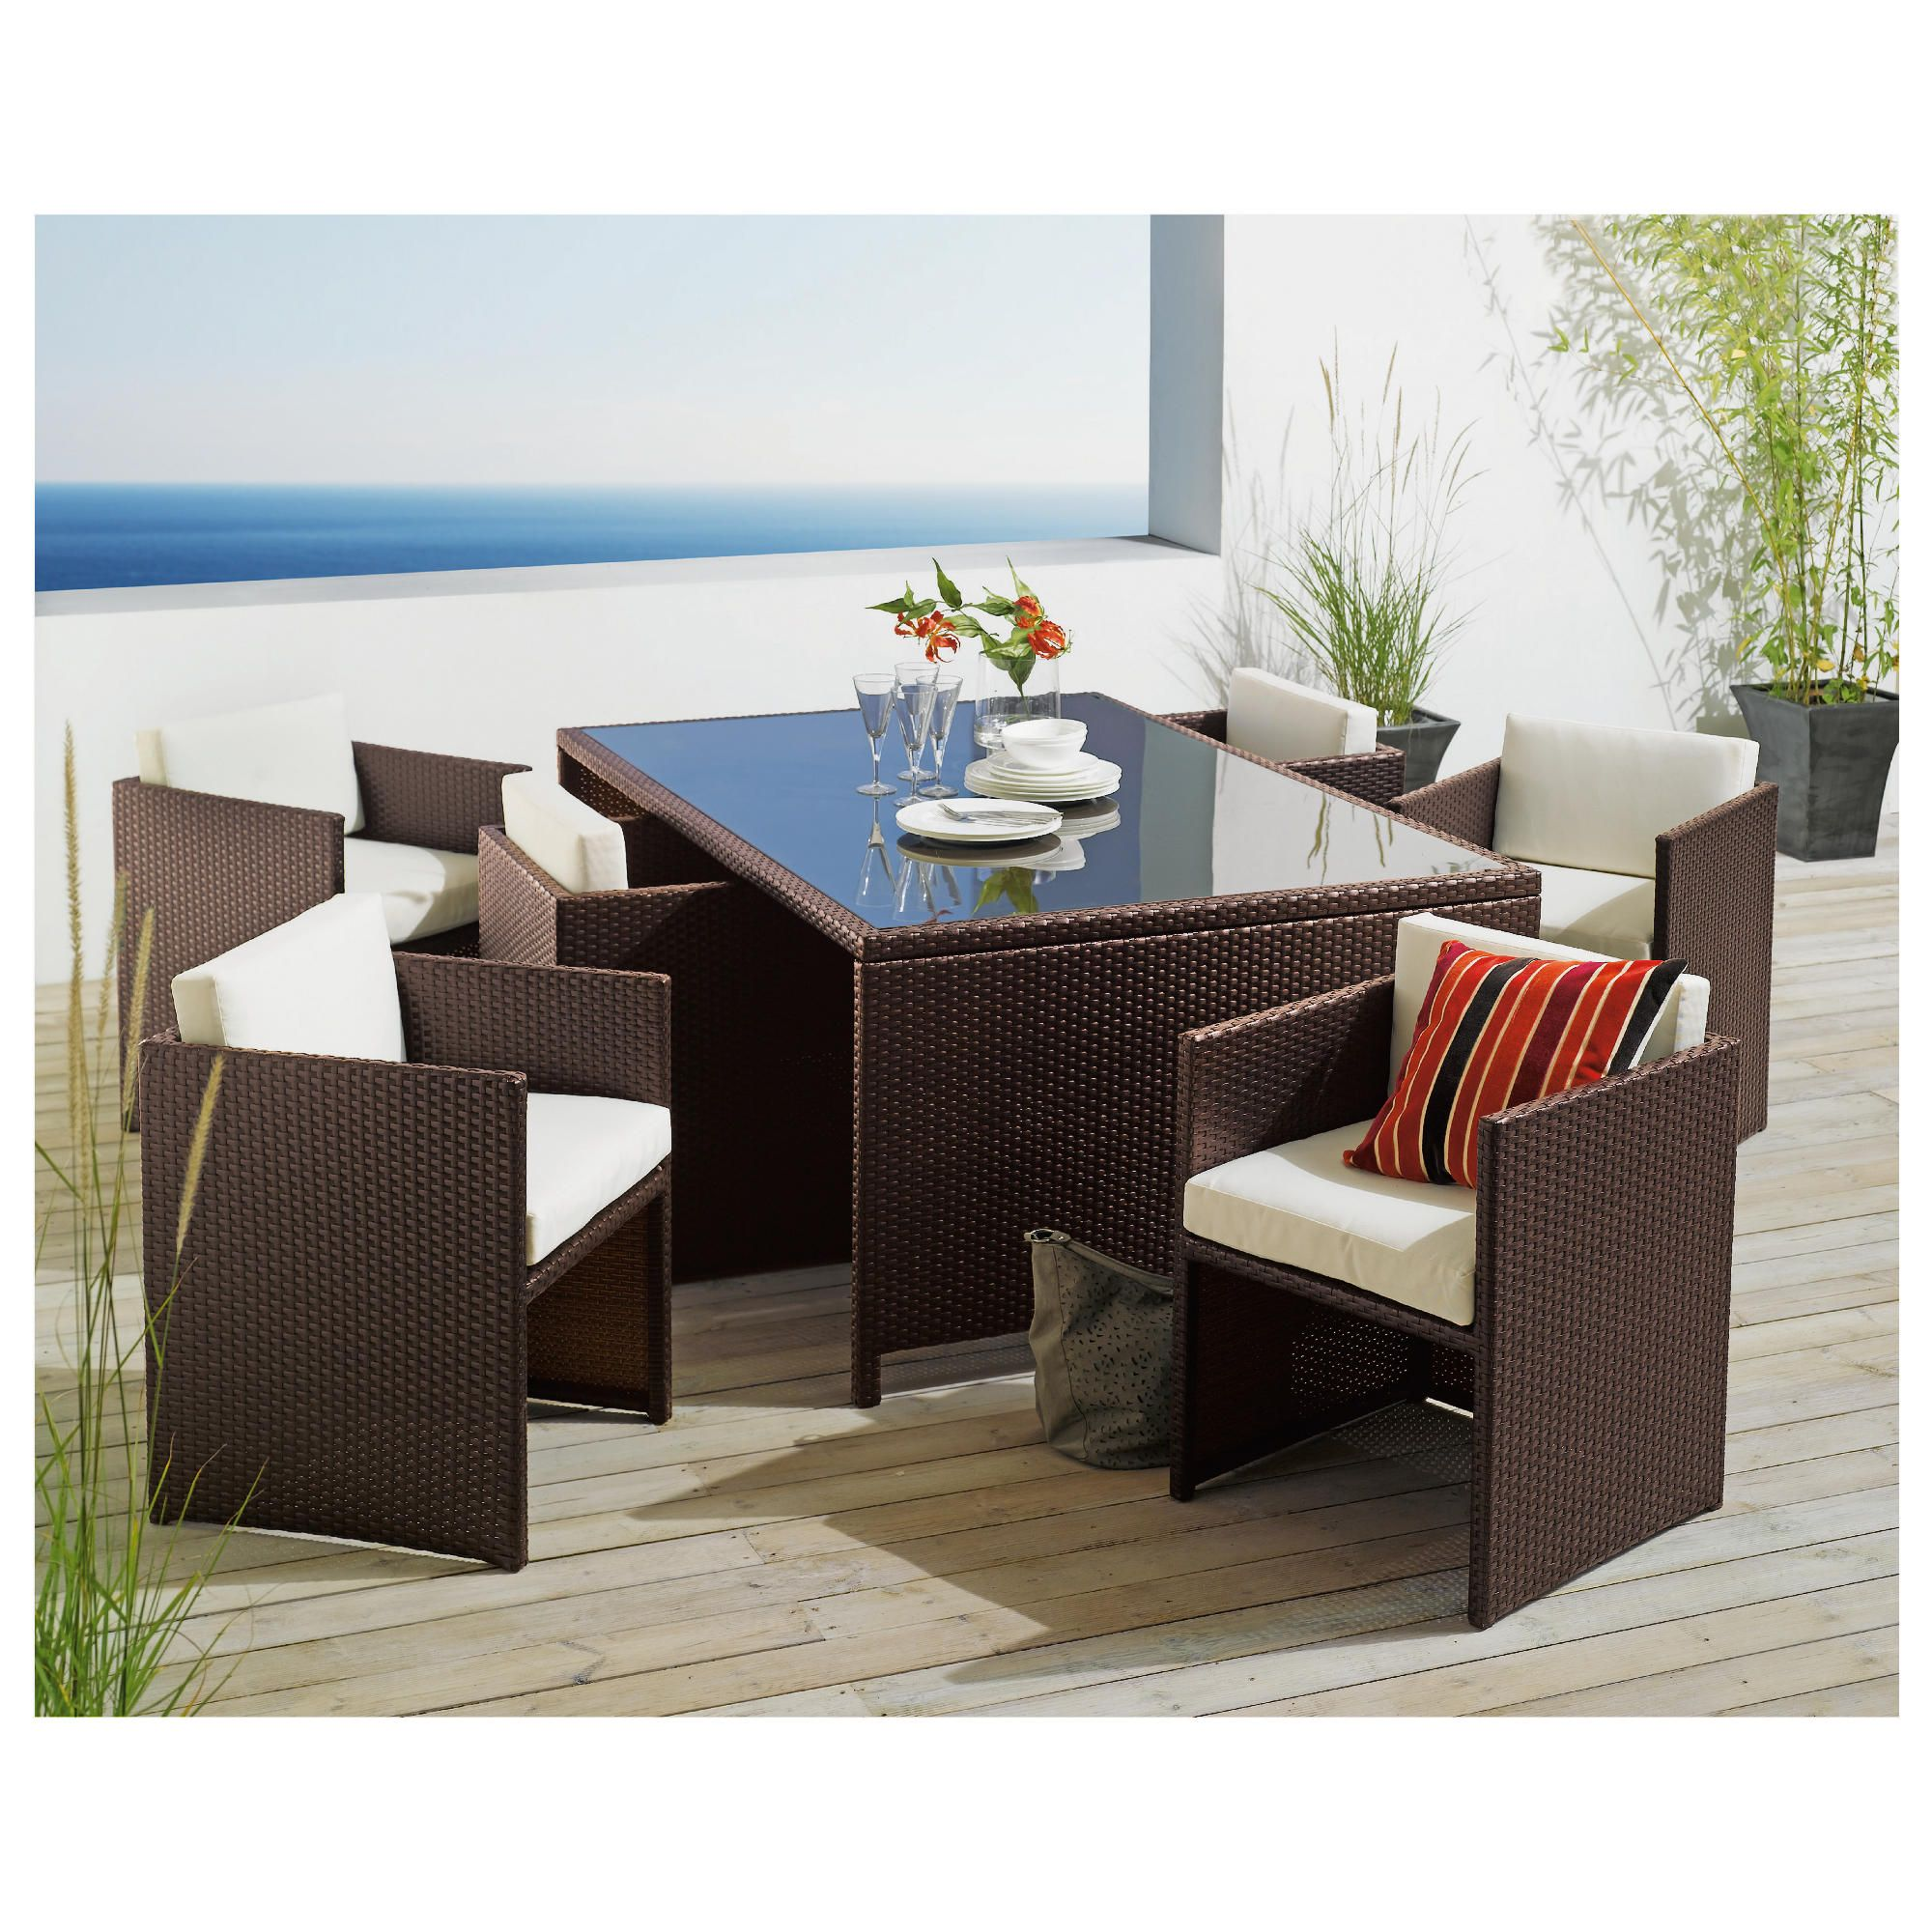 Cuba 6 Seater Hideaway Set - Brown at Tescos Direct